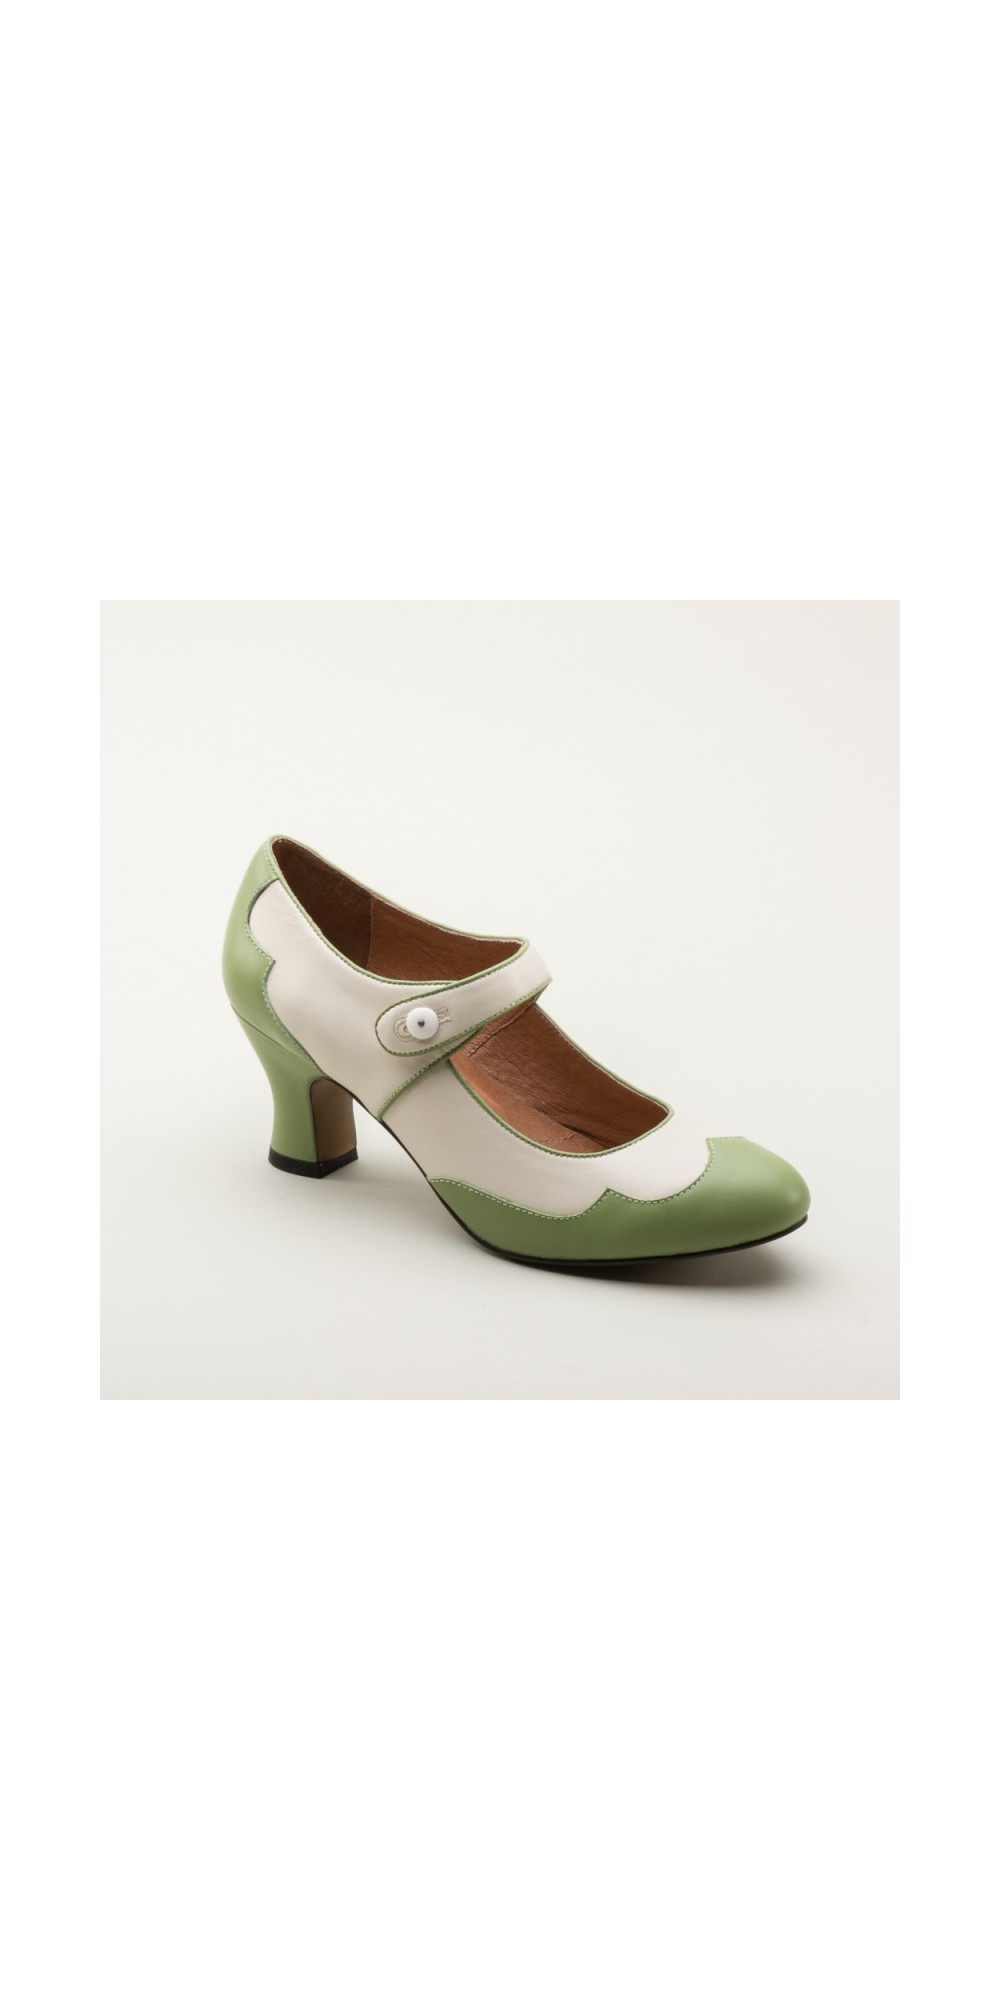 558da3cc2f93 Lillian Retro Shoes in Sage Ivory by Royal Vintage Shoes